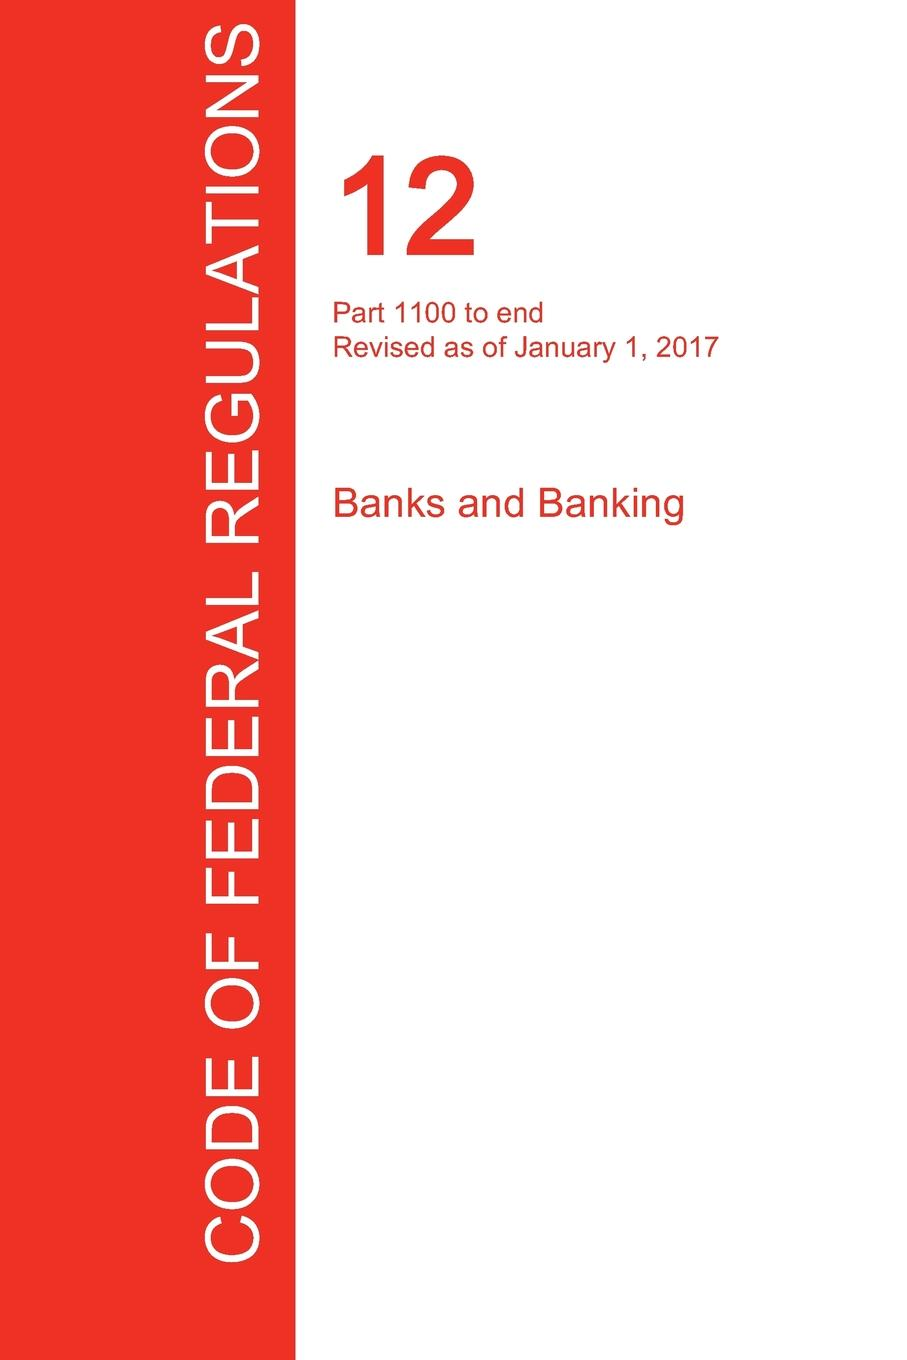 CFR 12, Part 1100 to end, Banks and Banking, January 01, 2017 (Volume 10 of 10) 6es7953 8lj30 0aa0 part